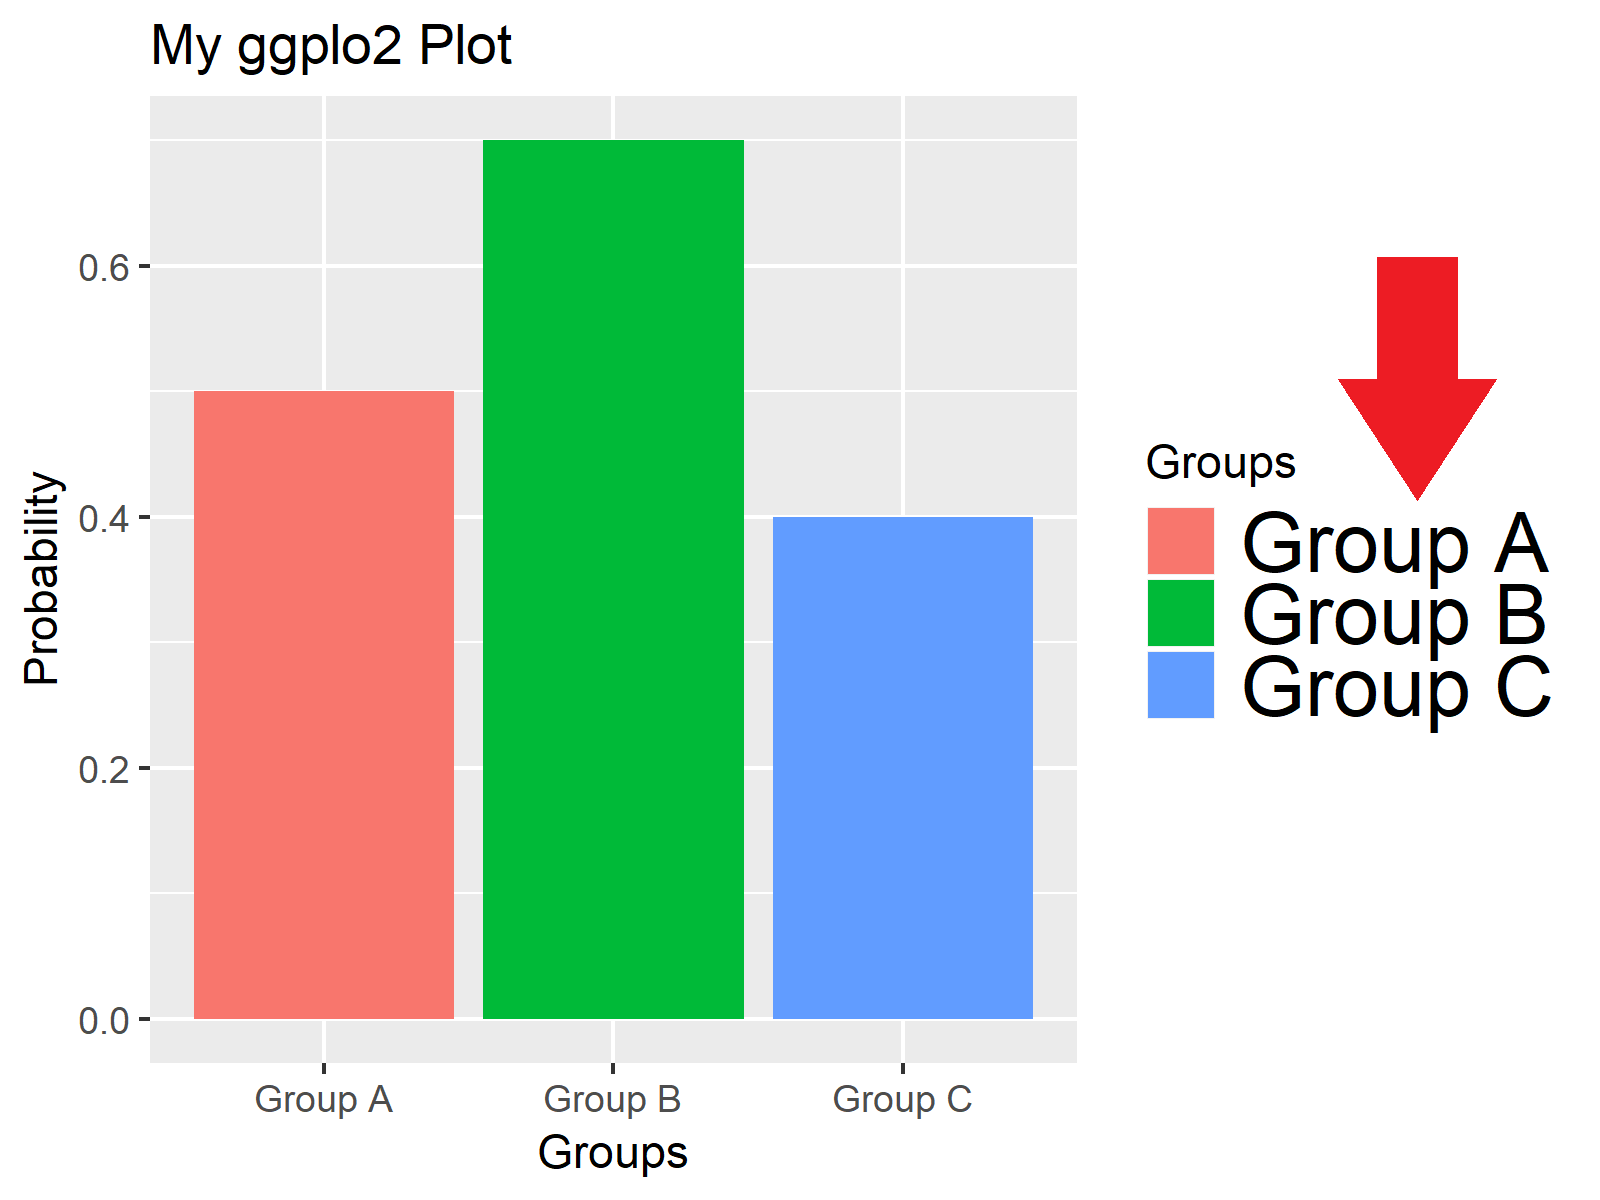 r ggplot2 plot font size of legend text